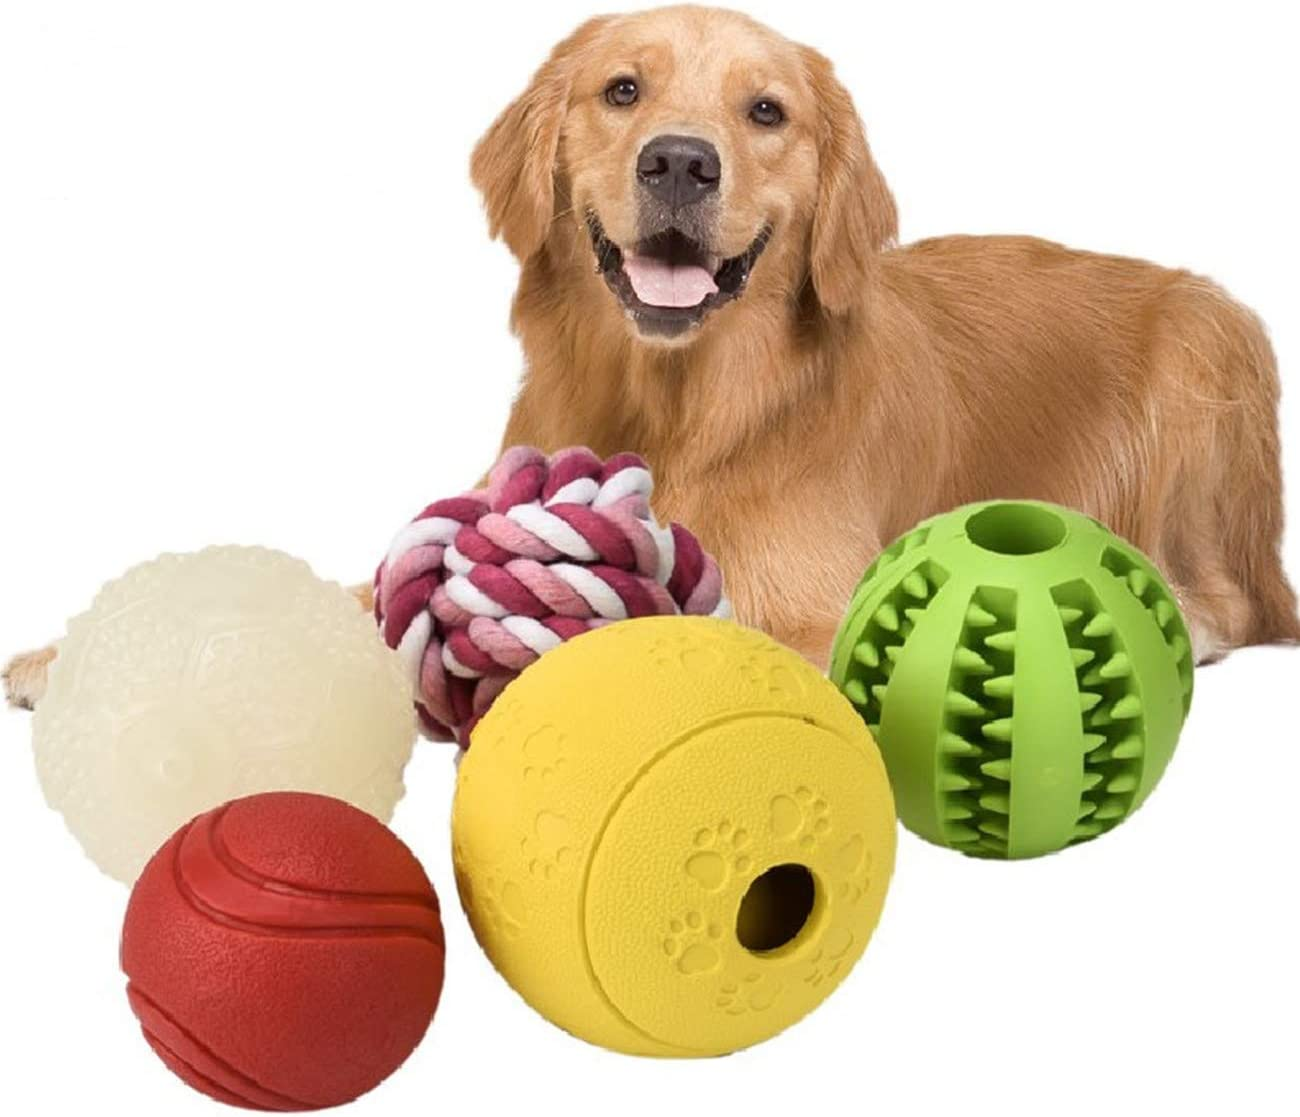 KOCENT Interactive Dog Toys (5 Different Functions),Dog Puzzle Toys,IQ Treat Ball for Small Medium Large Dog,Dog Squeaky Balls,Dog Chew Toys,Glow in The Dark Dog Ball,Food Treat Dispensing Toys